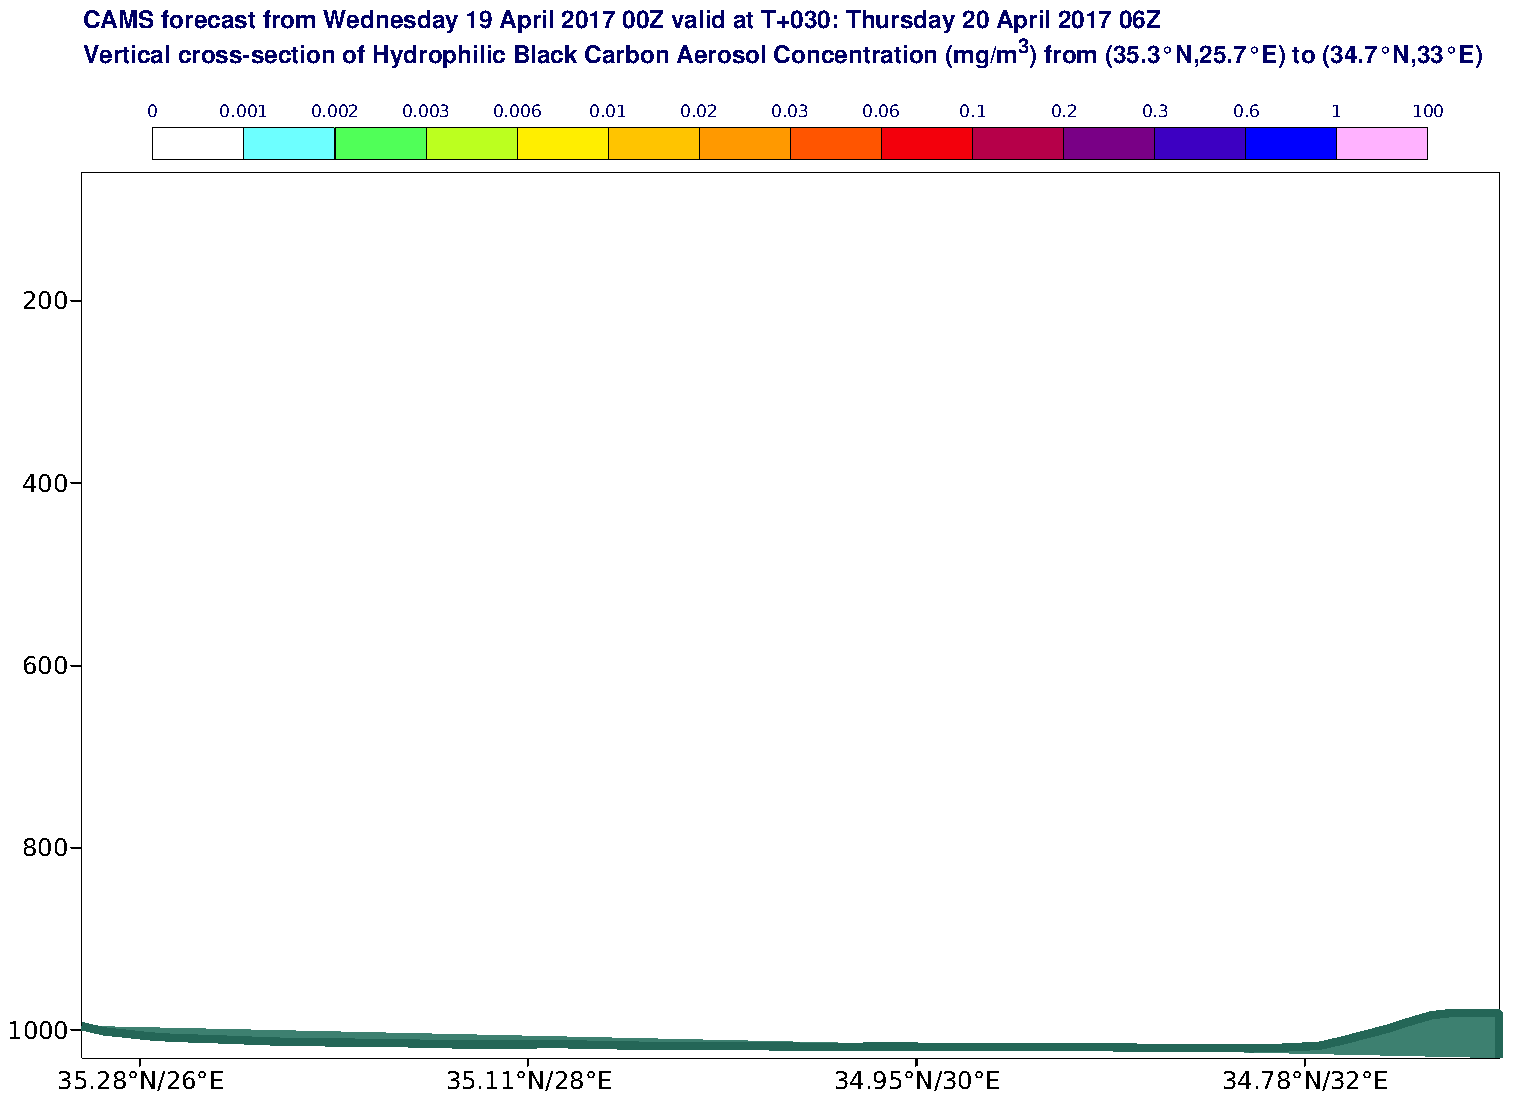 Vertical cross-section of Hydrophilic Black Carbon Aerosol Concentration (mg/m3) valid at T30 - 2017-04-20 06:00